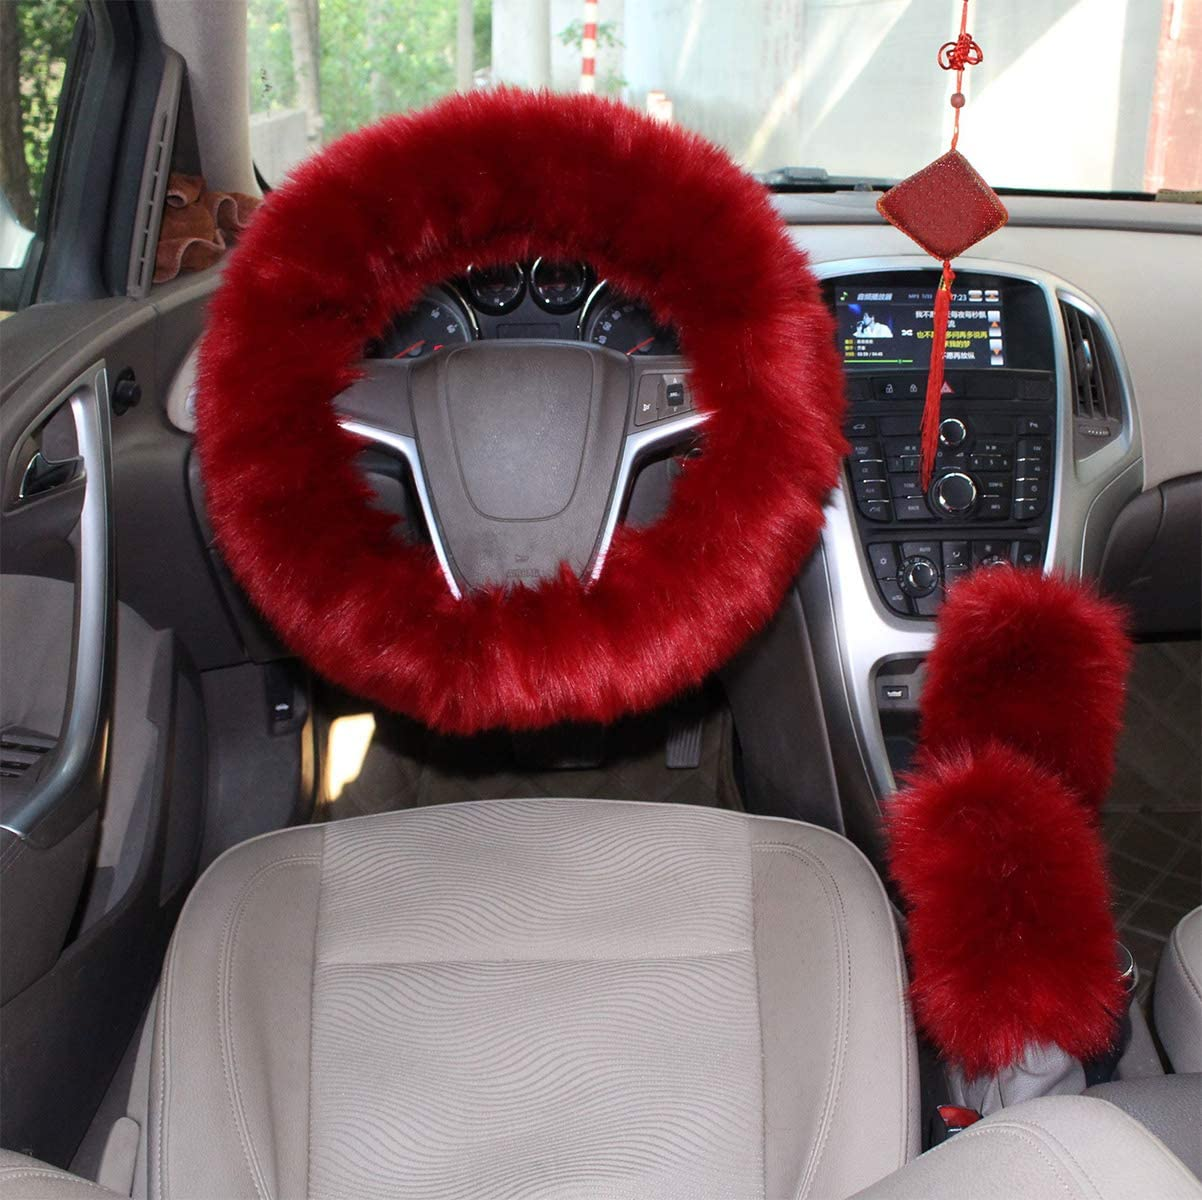 GIJITIF 1 Set 5 Pcs Car Steering Wheel Cover with Handbrake Cover /& Gear Shift Cover /& Seat Belt Shoulder Pads Fluffy Soft Warm in Winter 15 Inch Deep Pink